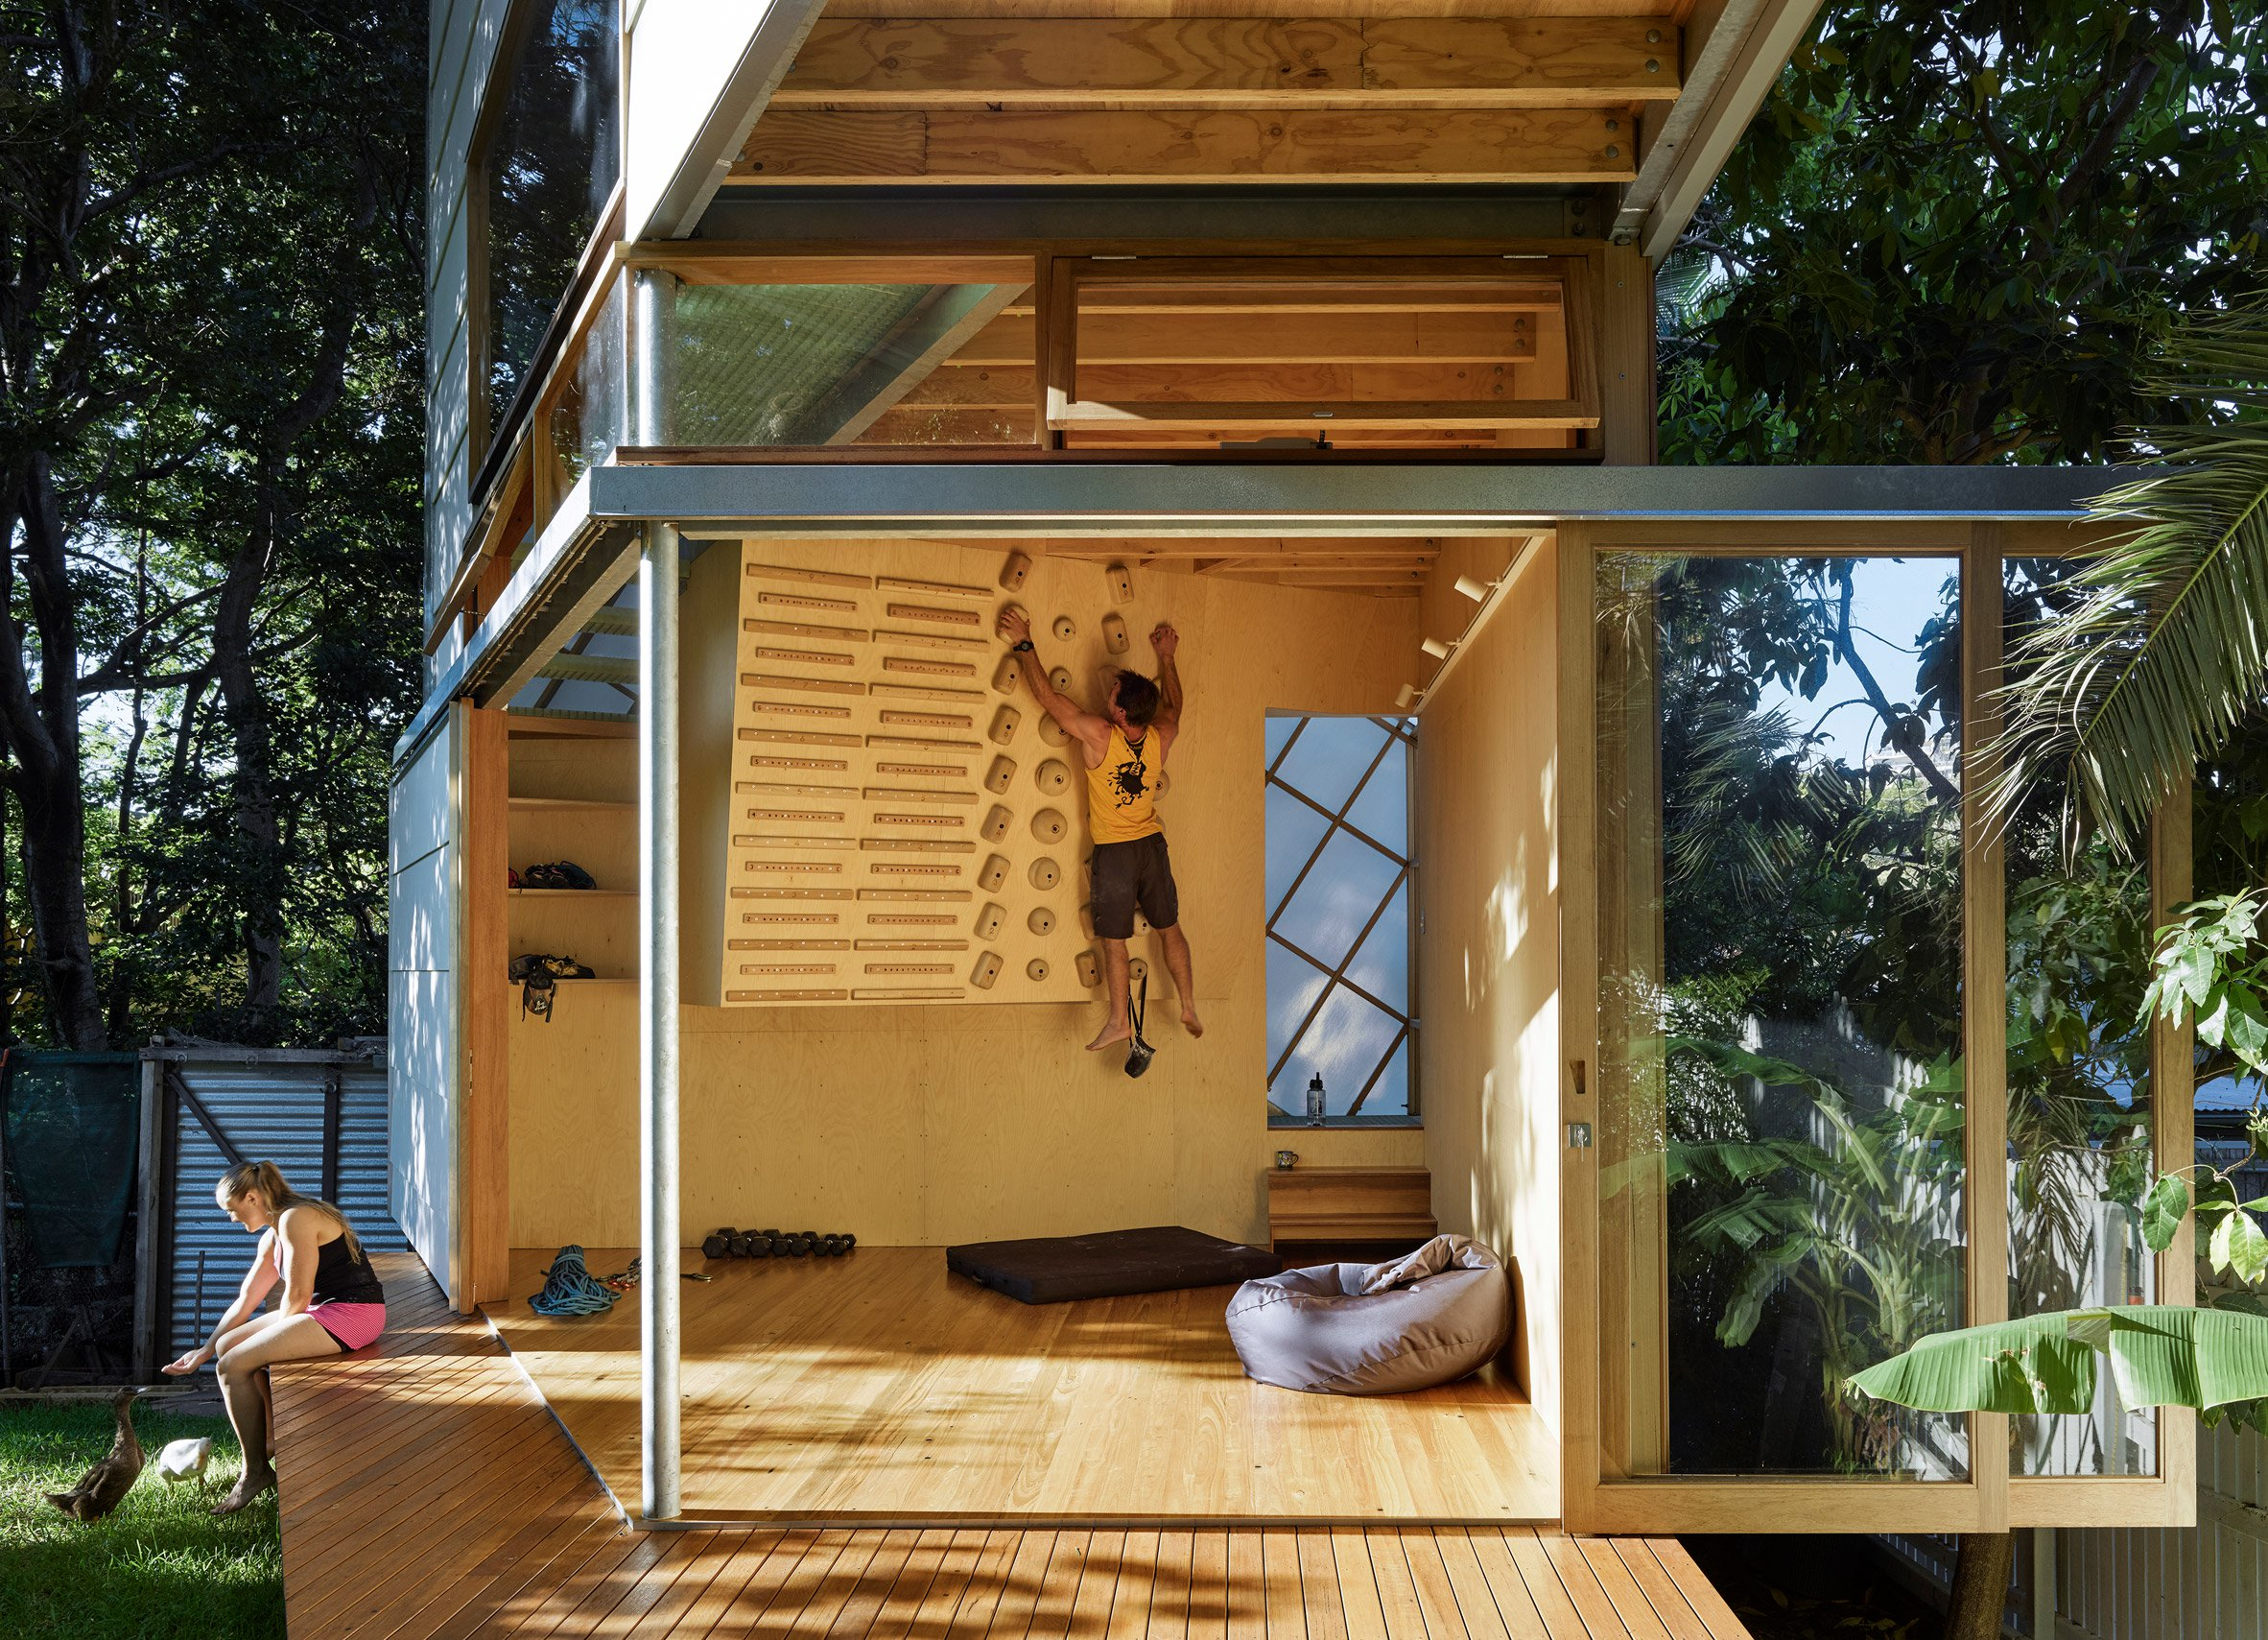 Flipboard Tiny Home Meets Treehouse In This Angular Backyard Extension